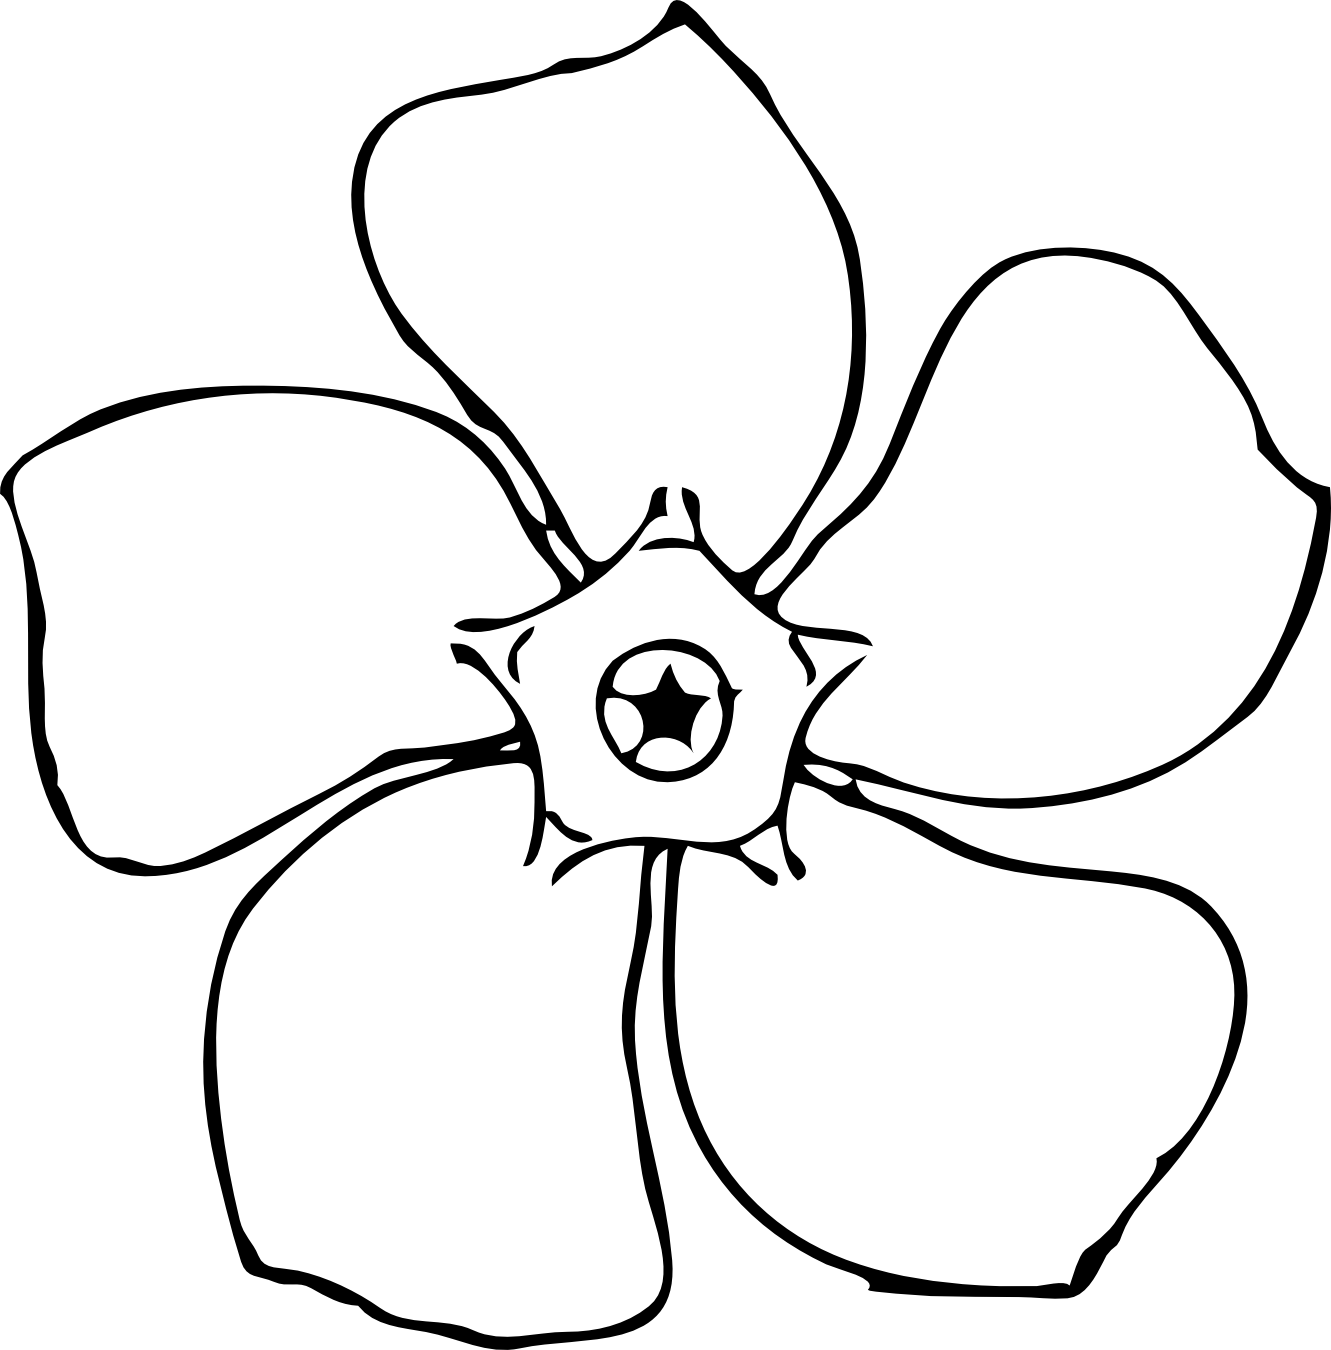 daffodil clipart illustration